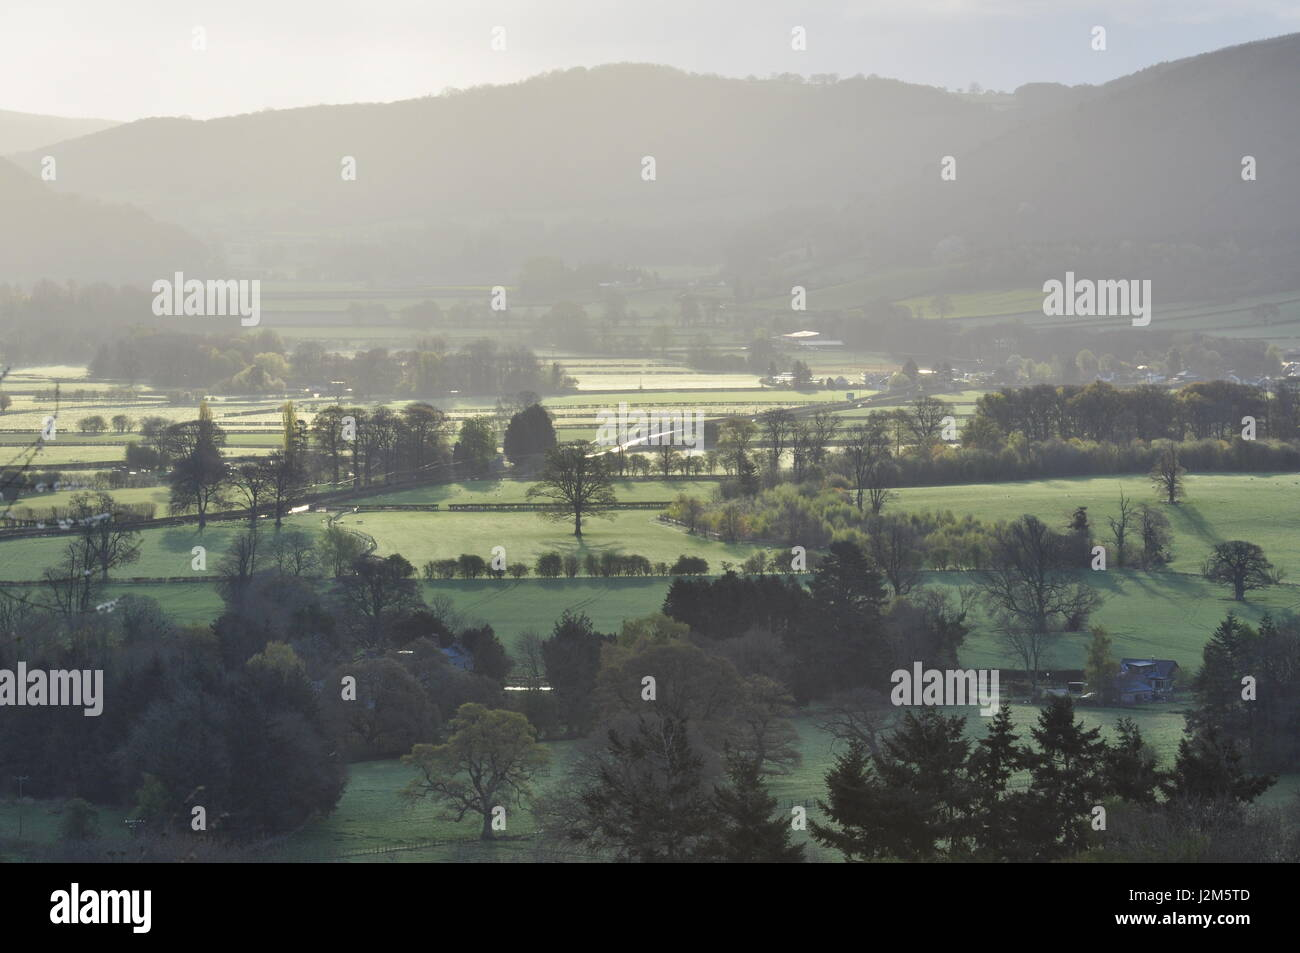 Looking east from OS grid ref 219597 towards Hanter Hill and Hergest Ridge in the Welsh Marches,Powys, Wales - Stock Image